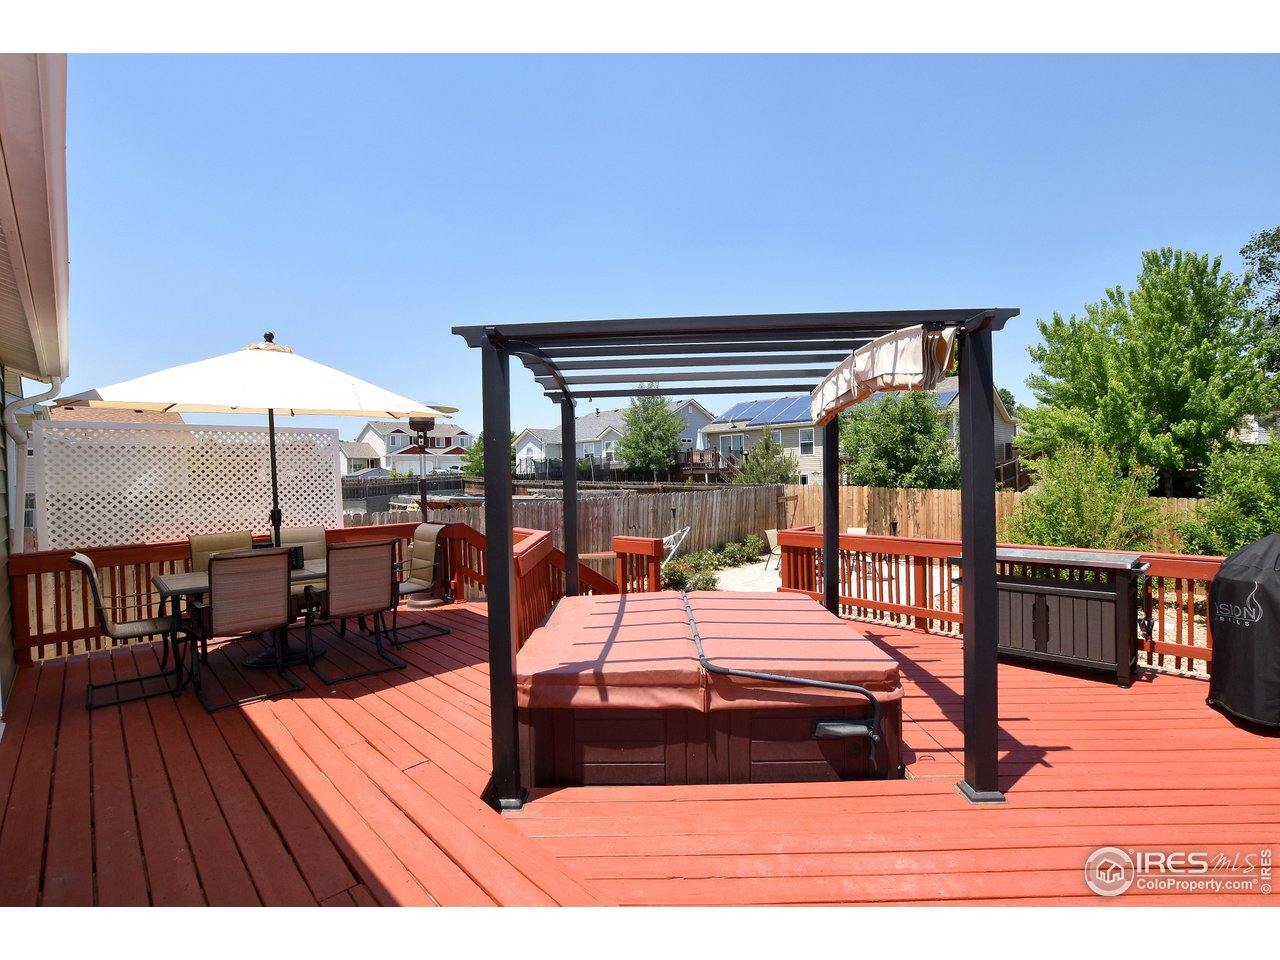 Expansive Deck, great for entertaining or a quiet evening in your hot tub under the stars